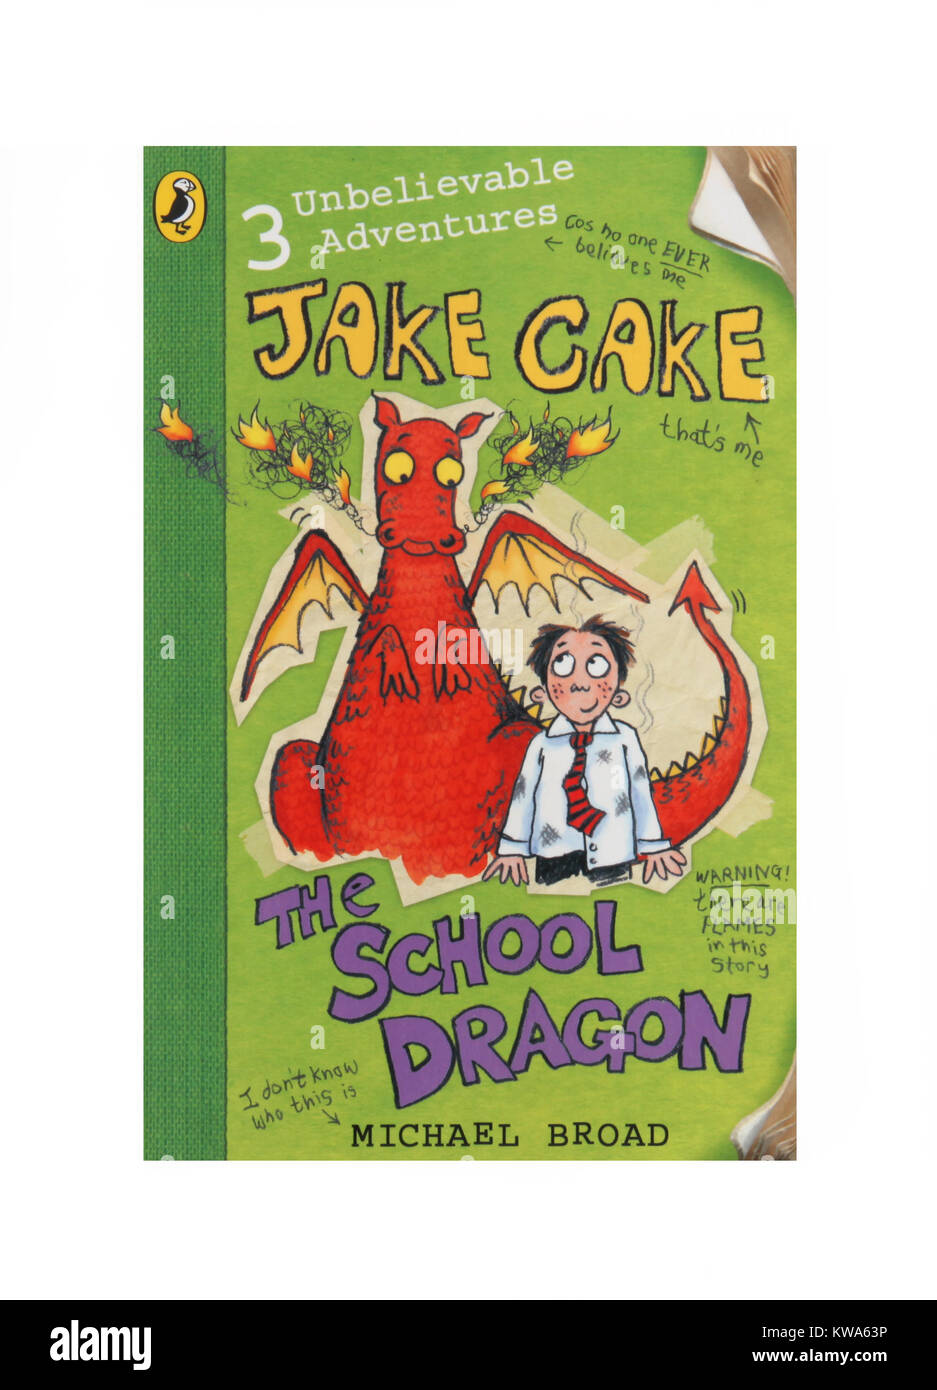 The book, Jake Cake The School Dragon by Michael Broad. - Stock Image